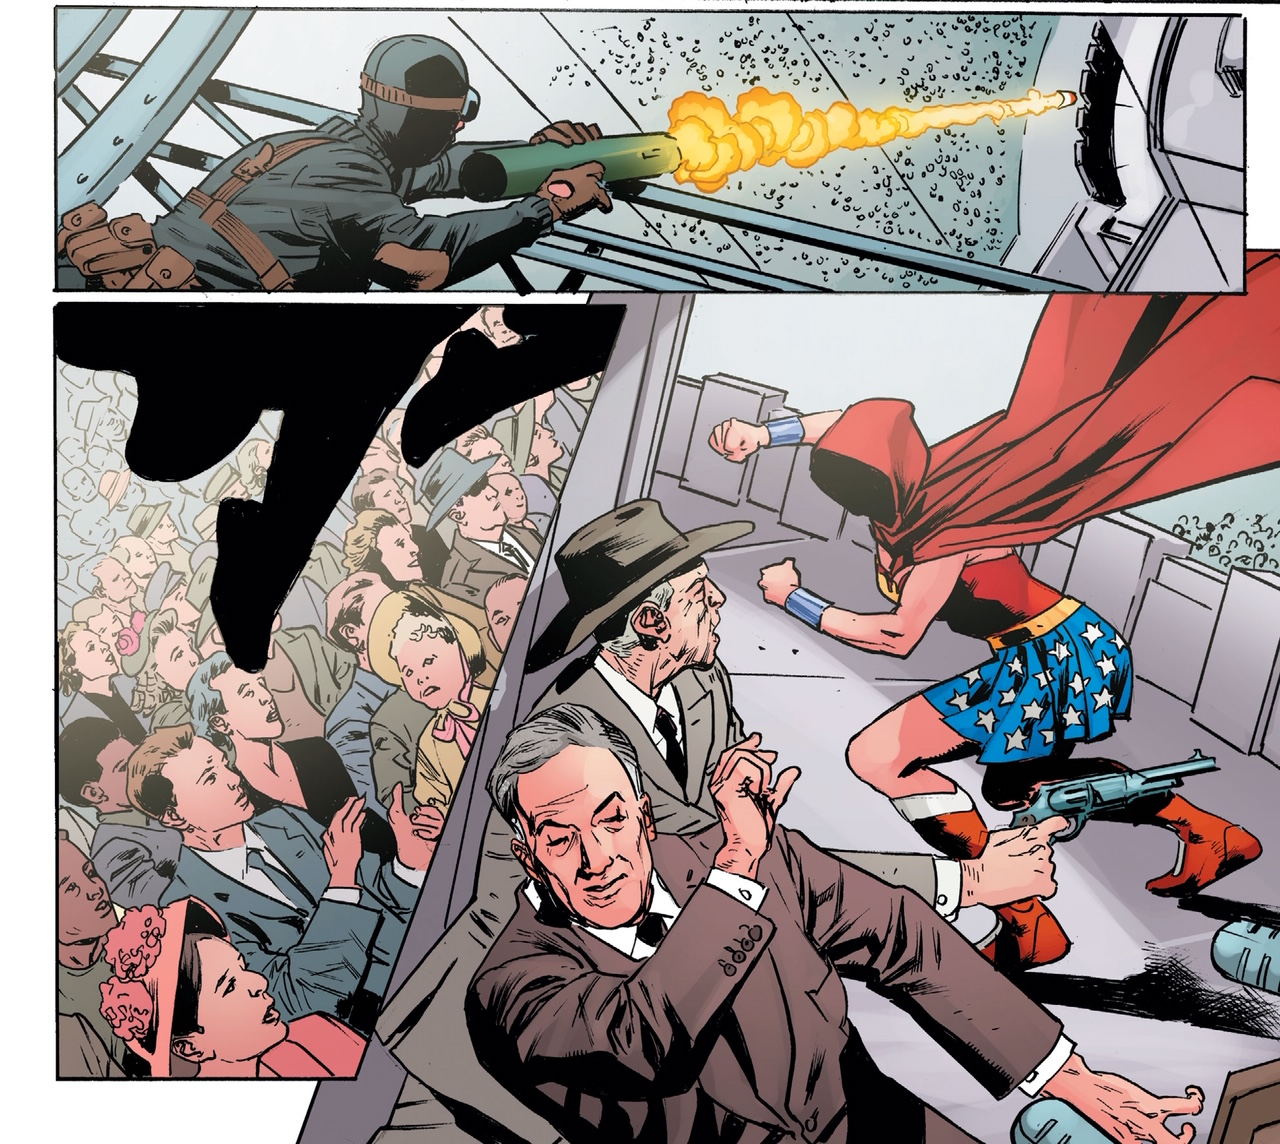 """First Look: """"A Brave New World"""" by Scott Snyder and Bryan Hitch appearing in Wonder Woman #750"""